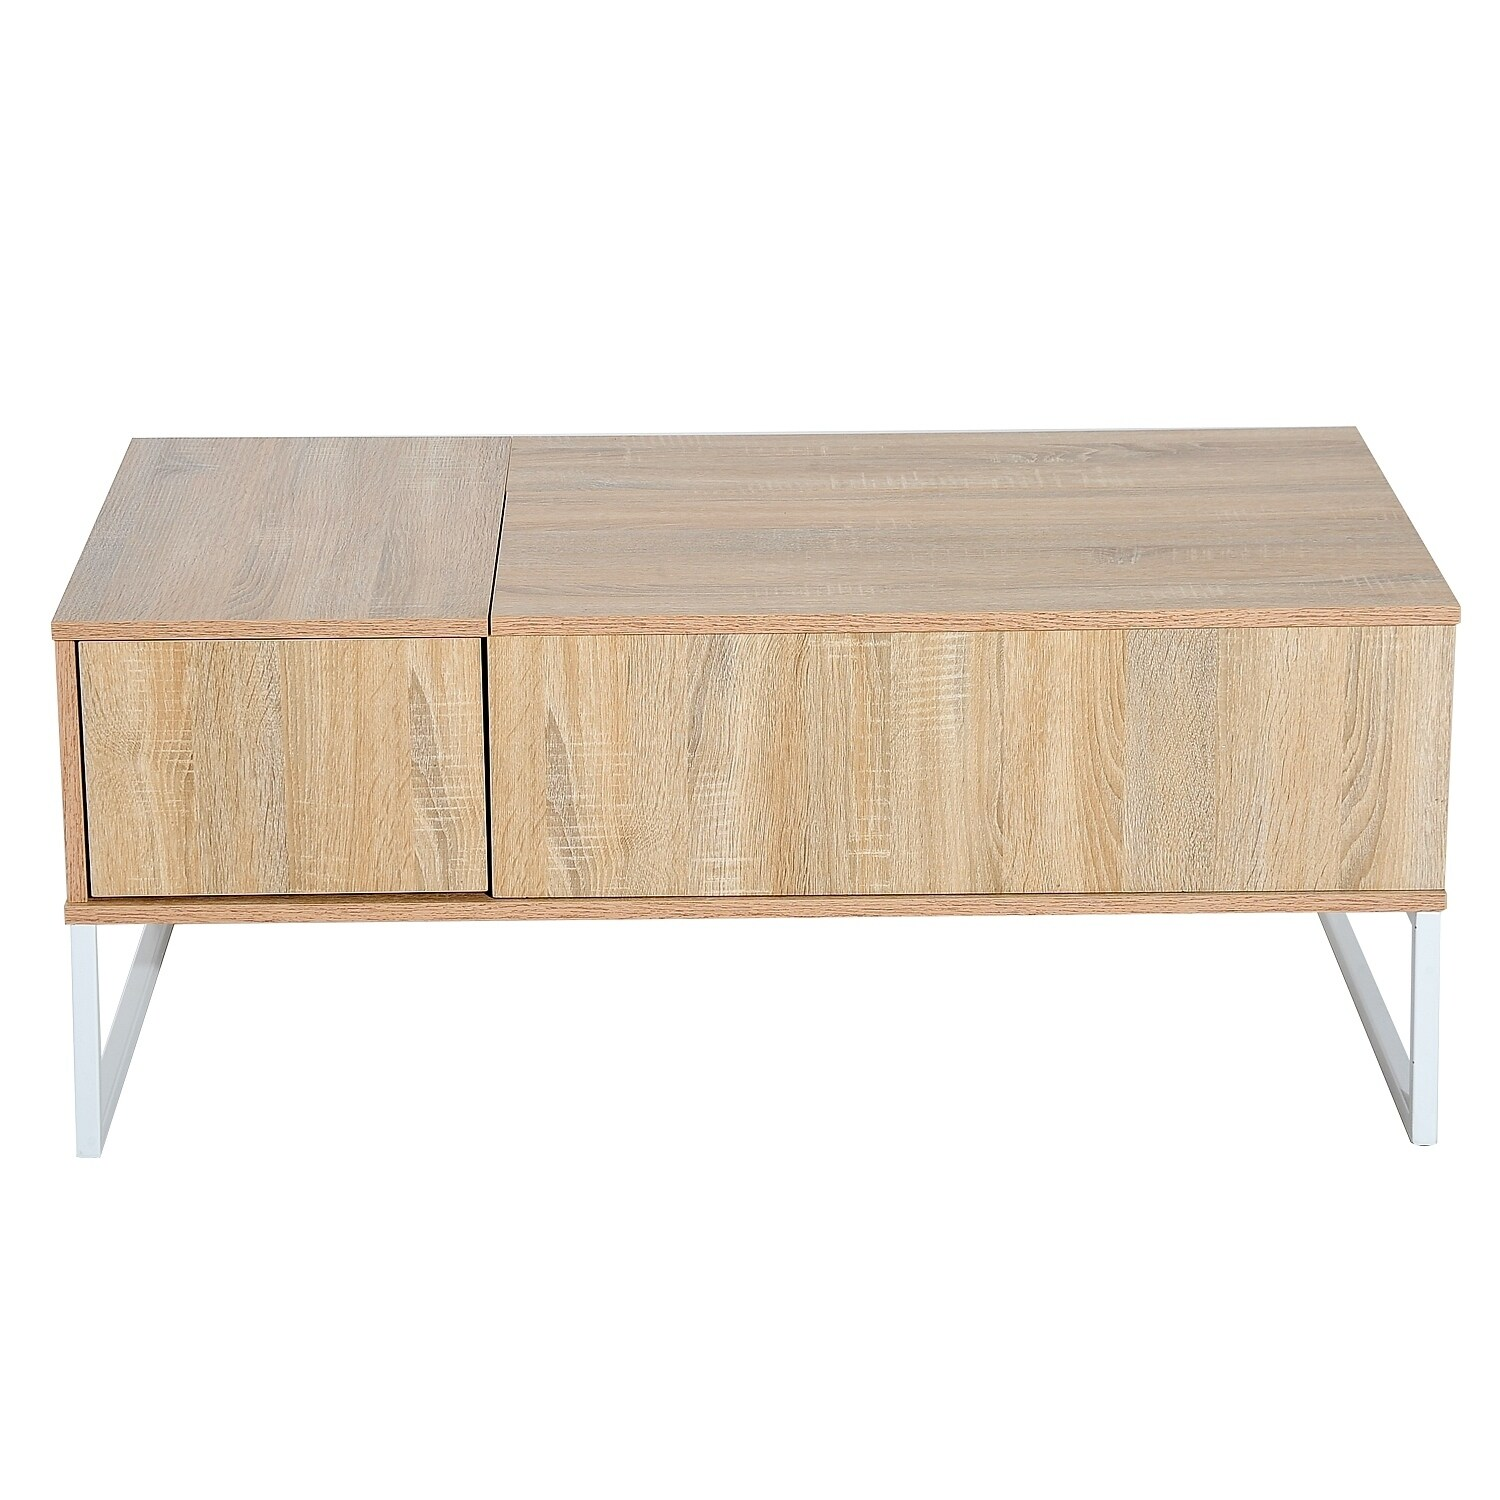 Homcom Golden Woodgrain 43 Inch Modern Lift Top Coffee Table Desk With Hidden Storage And Drawer Free Shipping Today 22468289